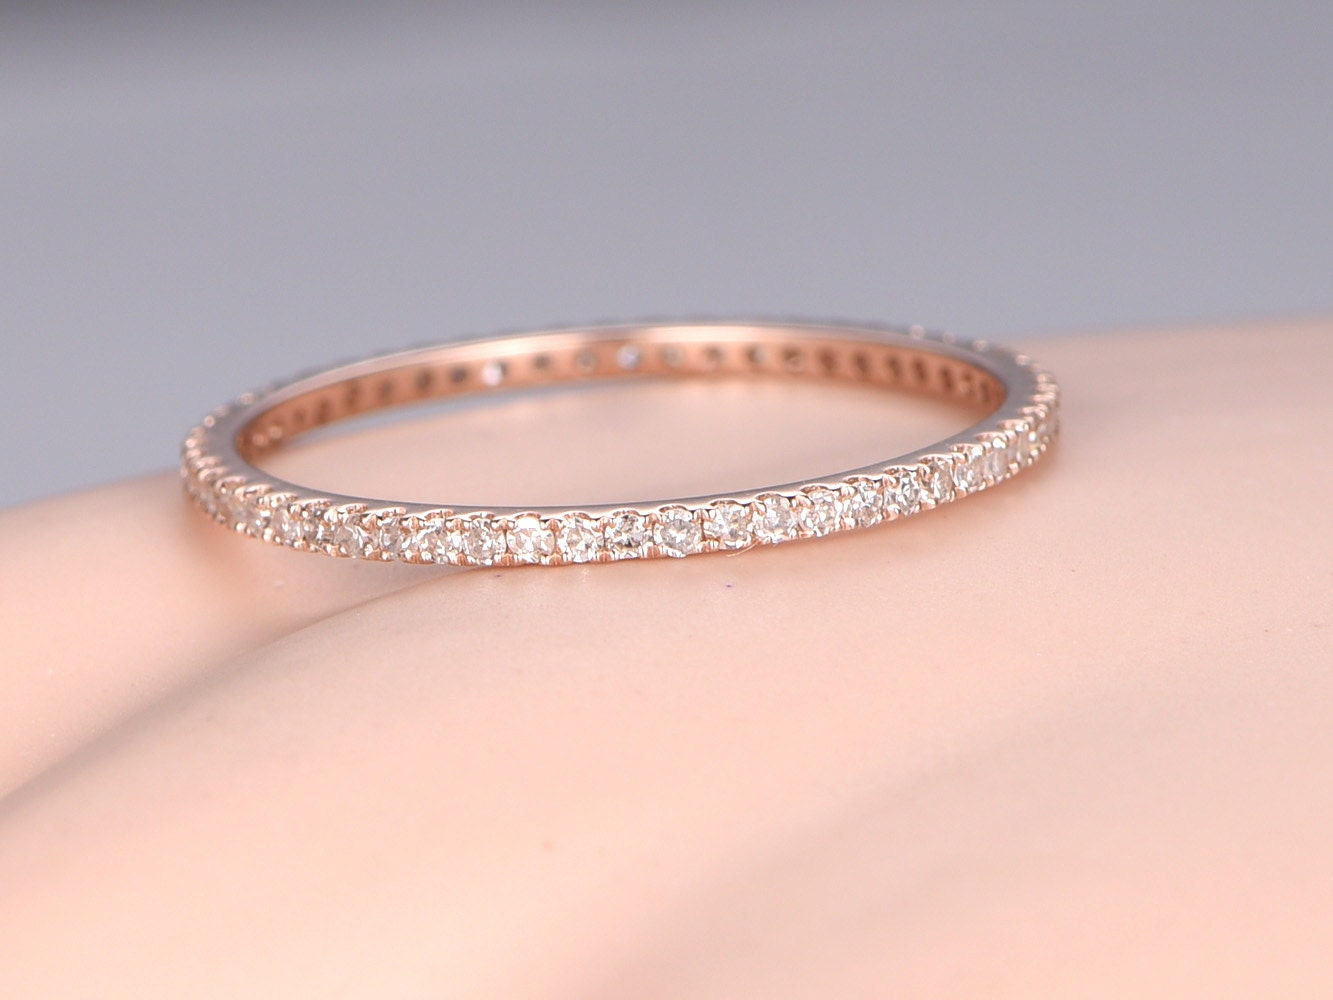 Pave Diamond Engagement Rings Wedding Bands Asymmetric Cushion Cut ...